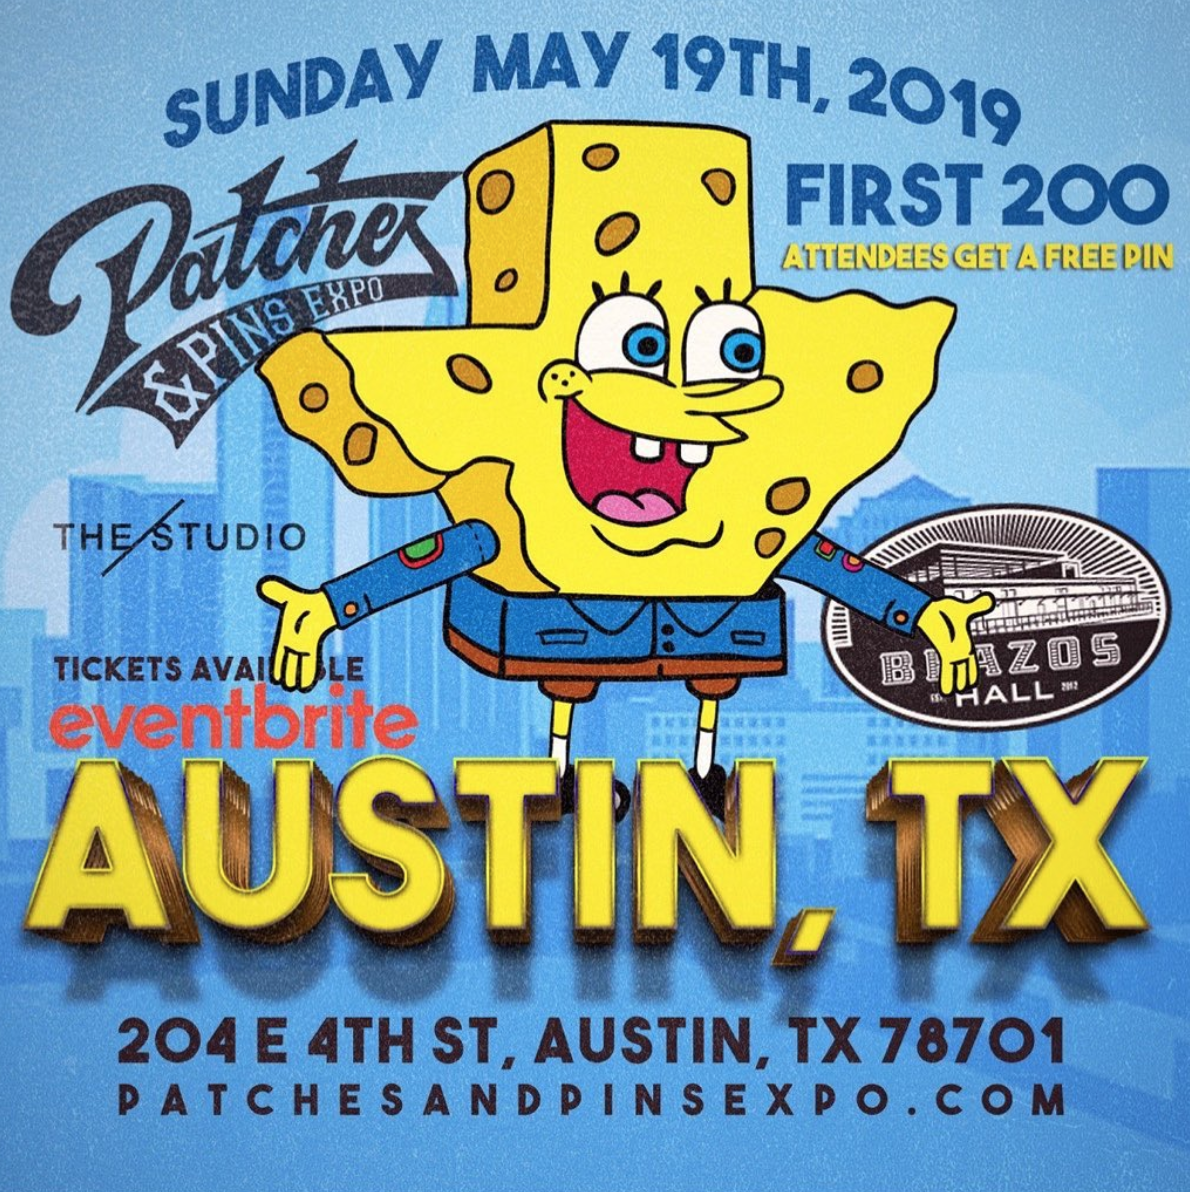 patches-pins-expo-austin